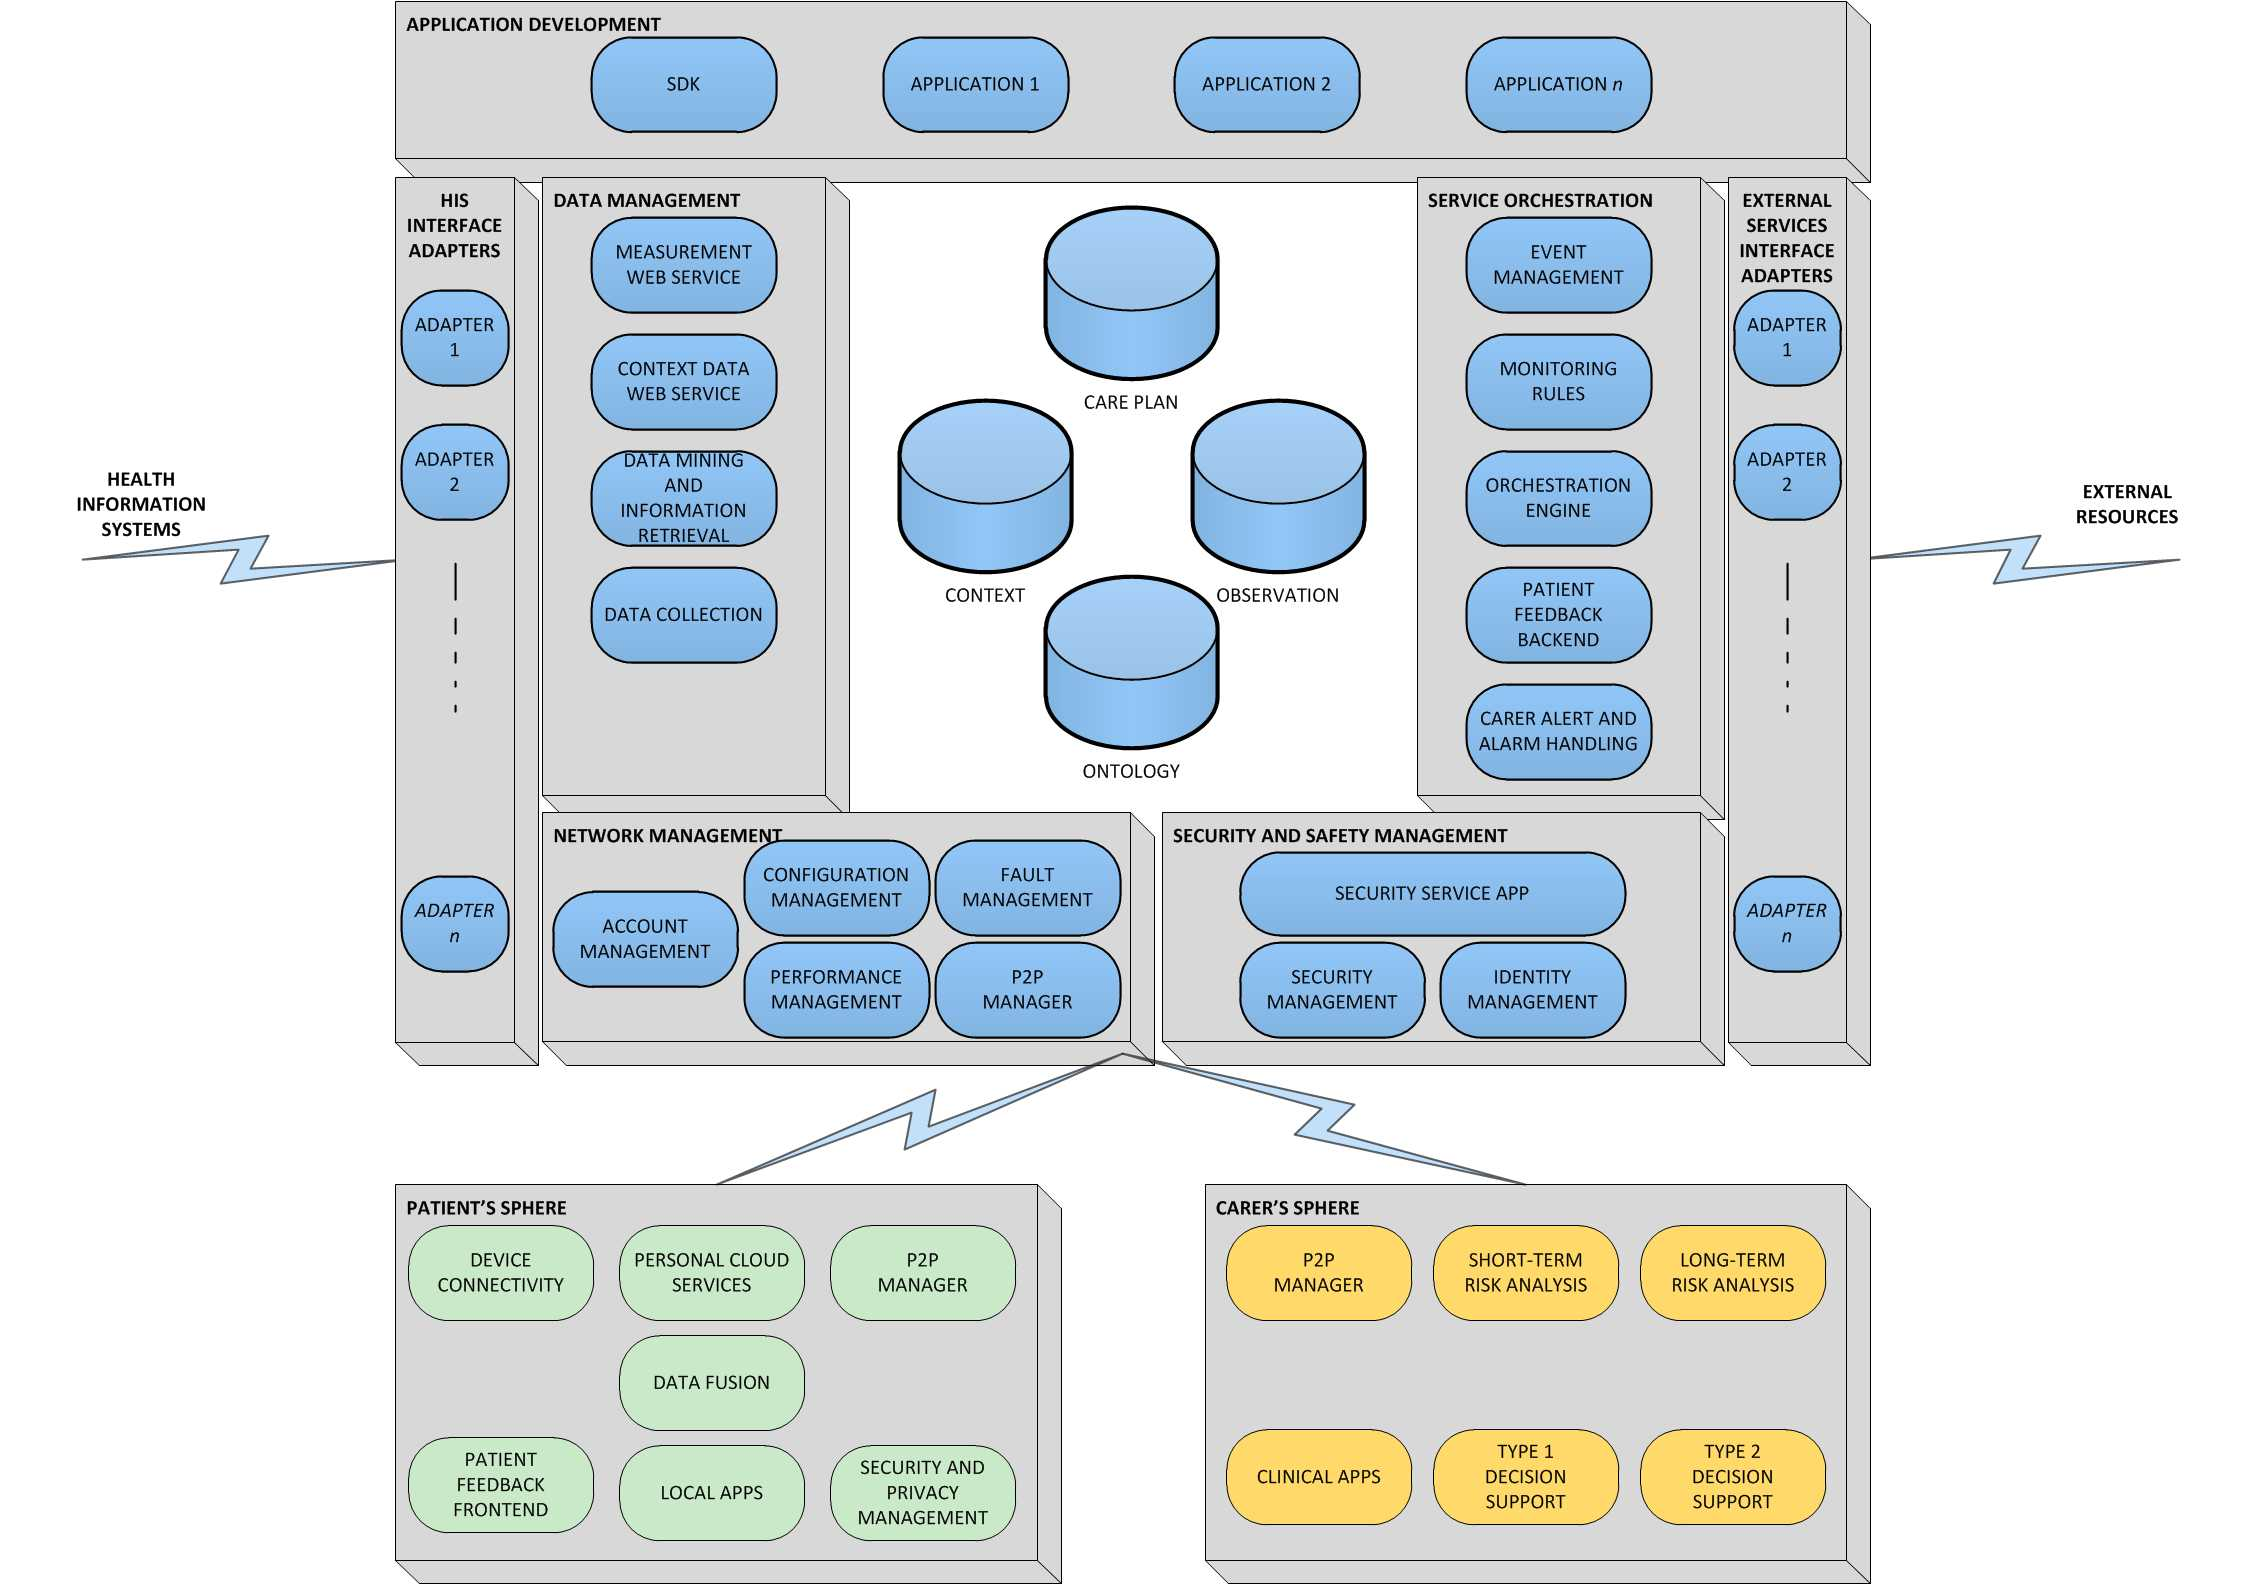 Component based platform architecture with the Service Orchestration module